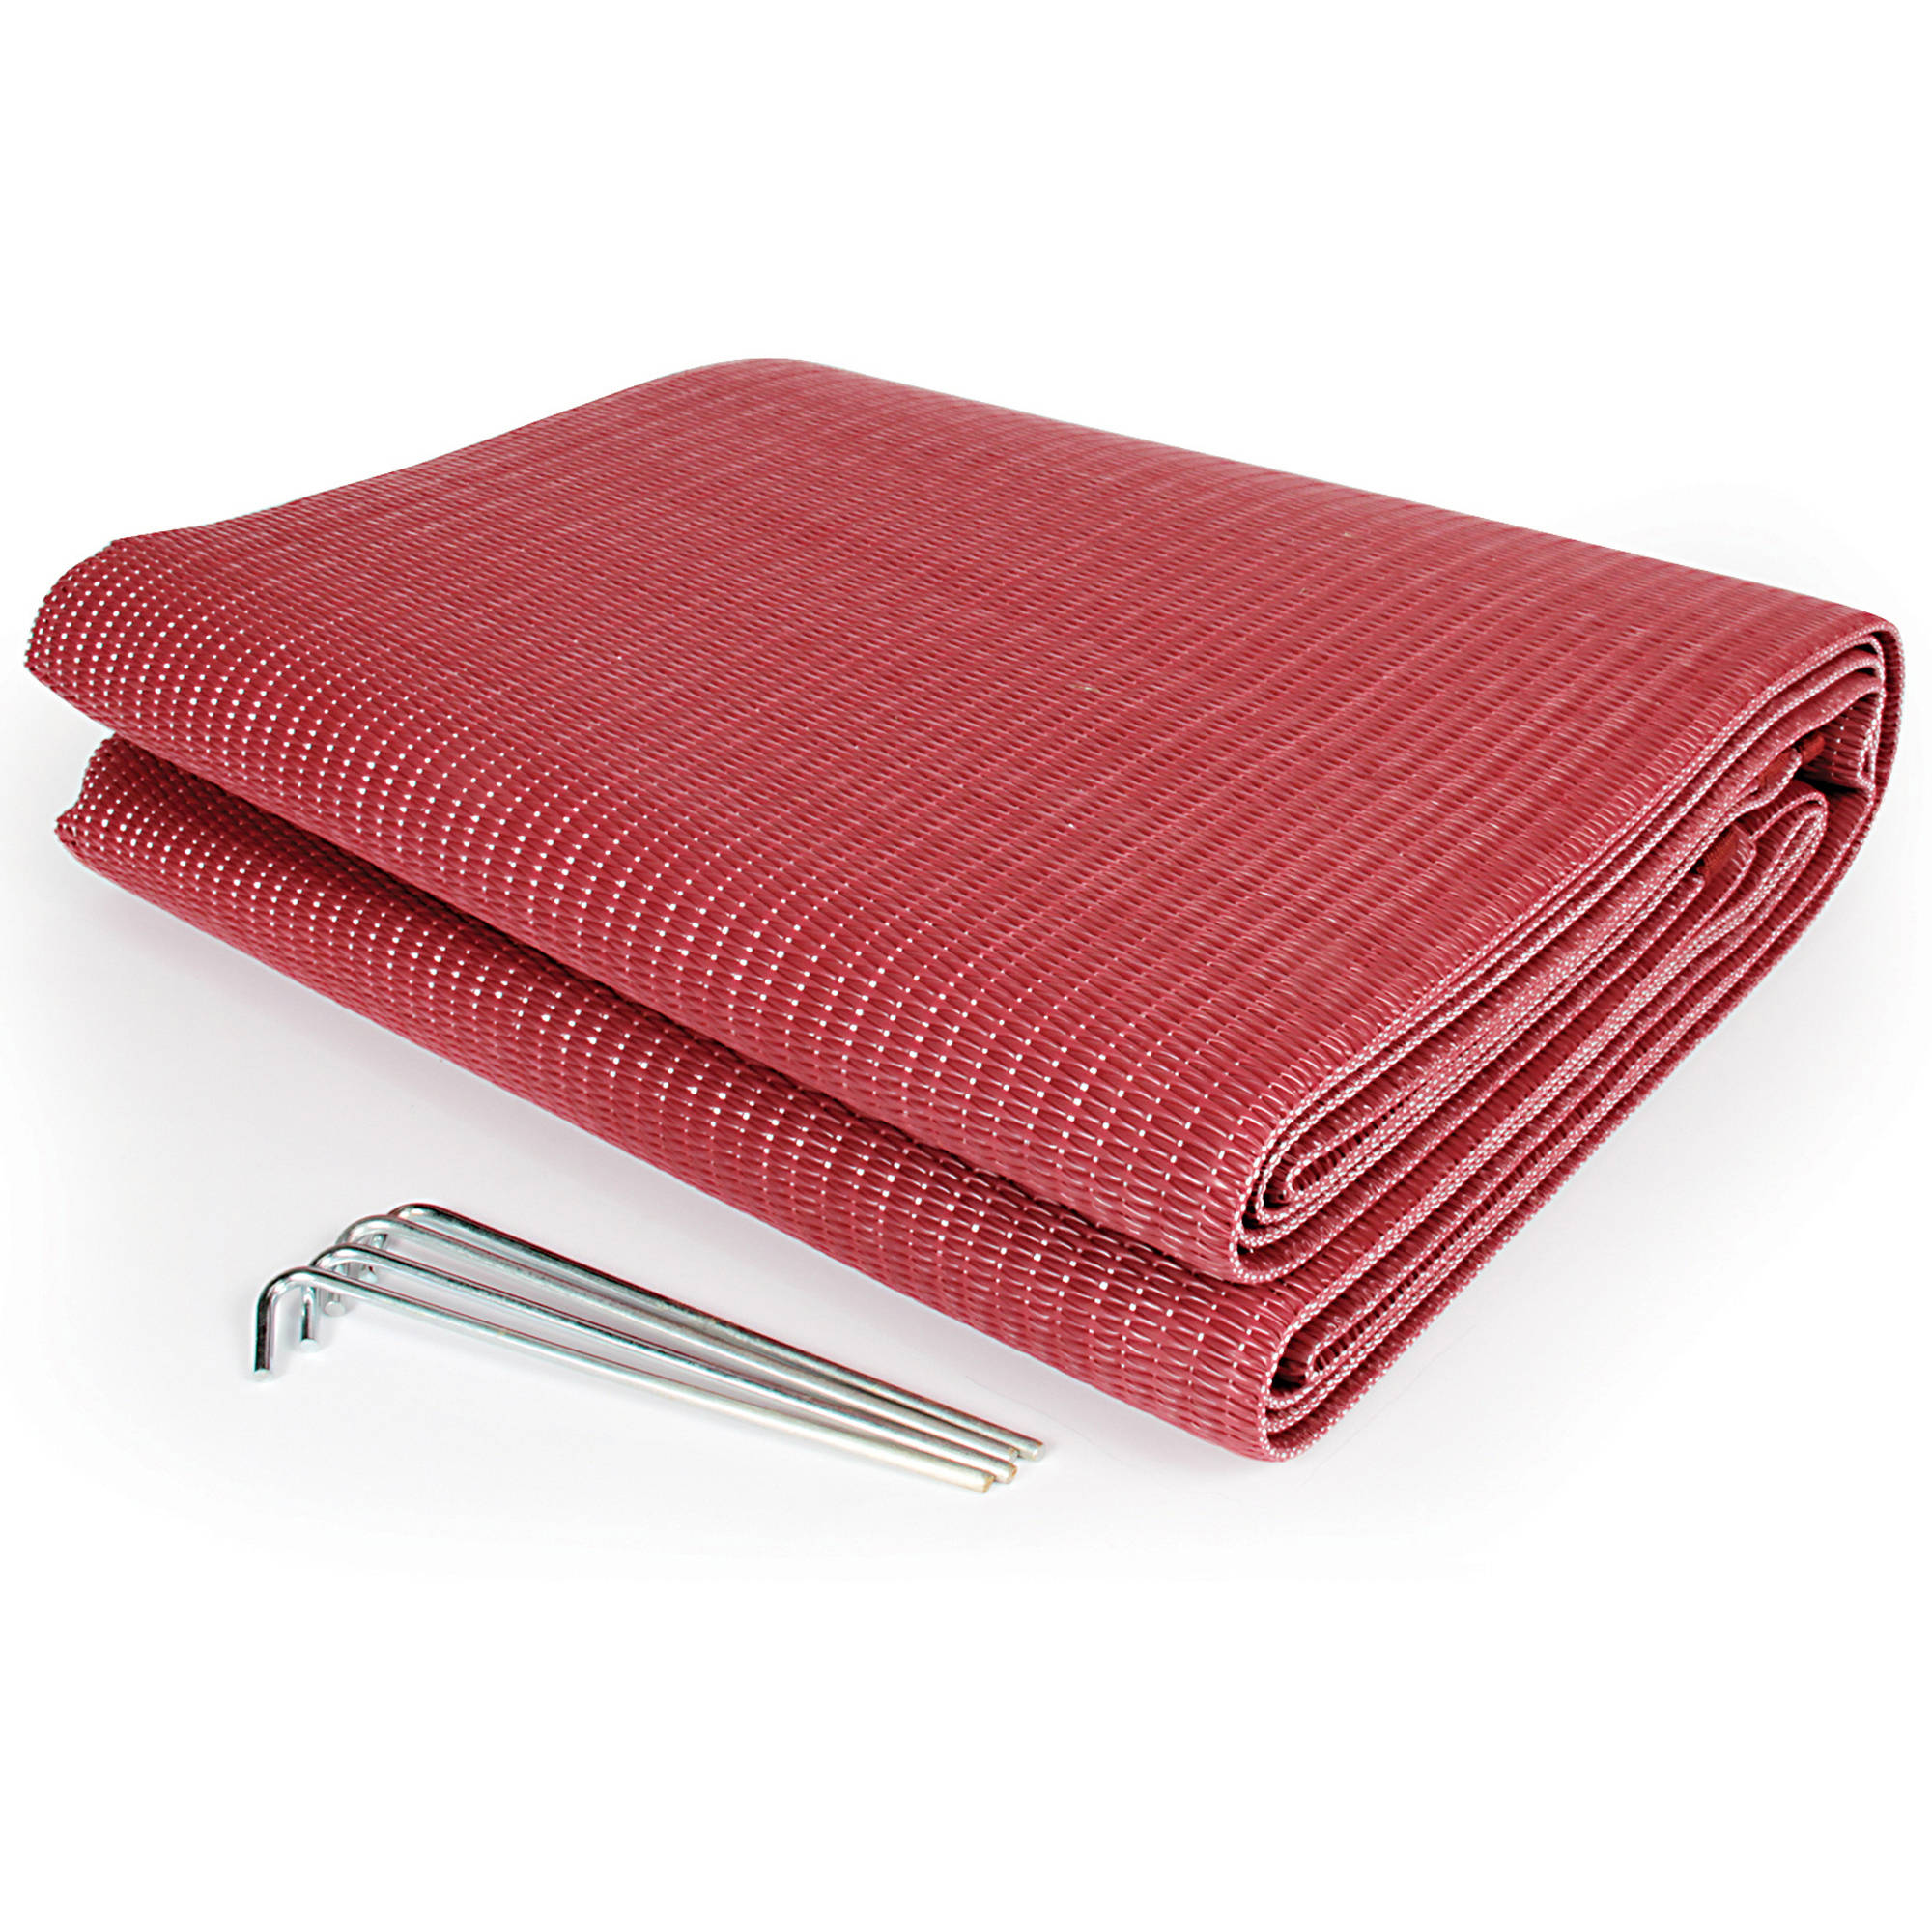 Camco 42882 Reversible Awning Leisure Mat, 6' x 9', Burgundy